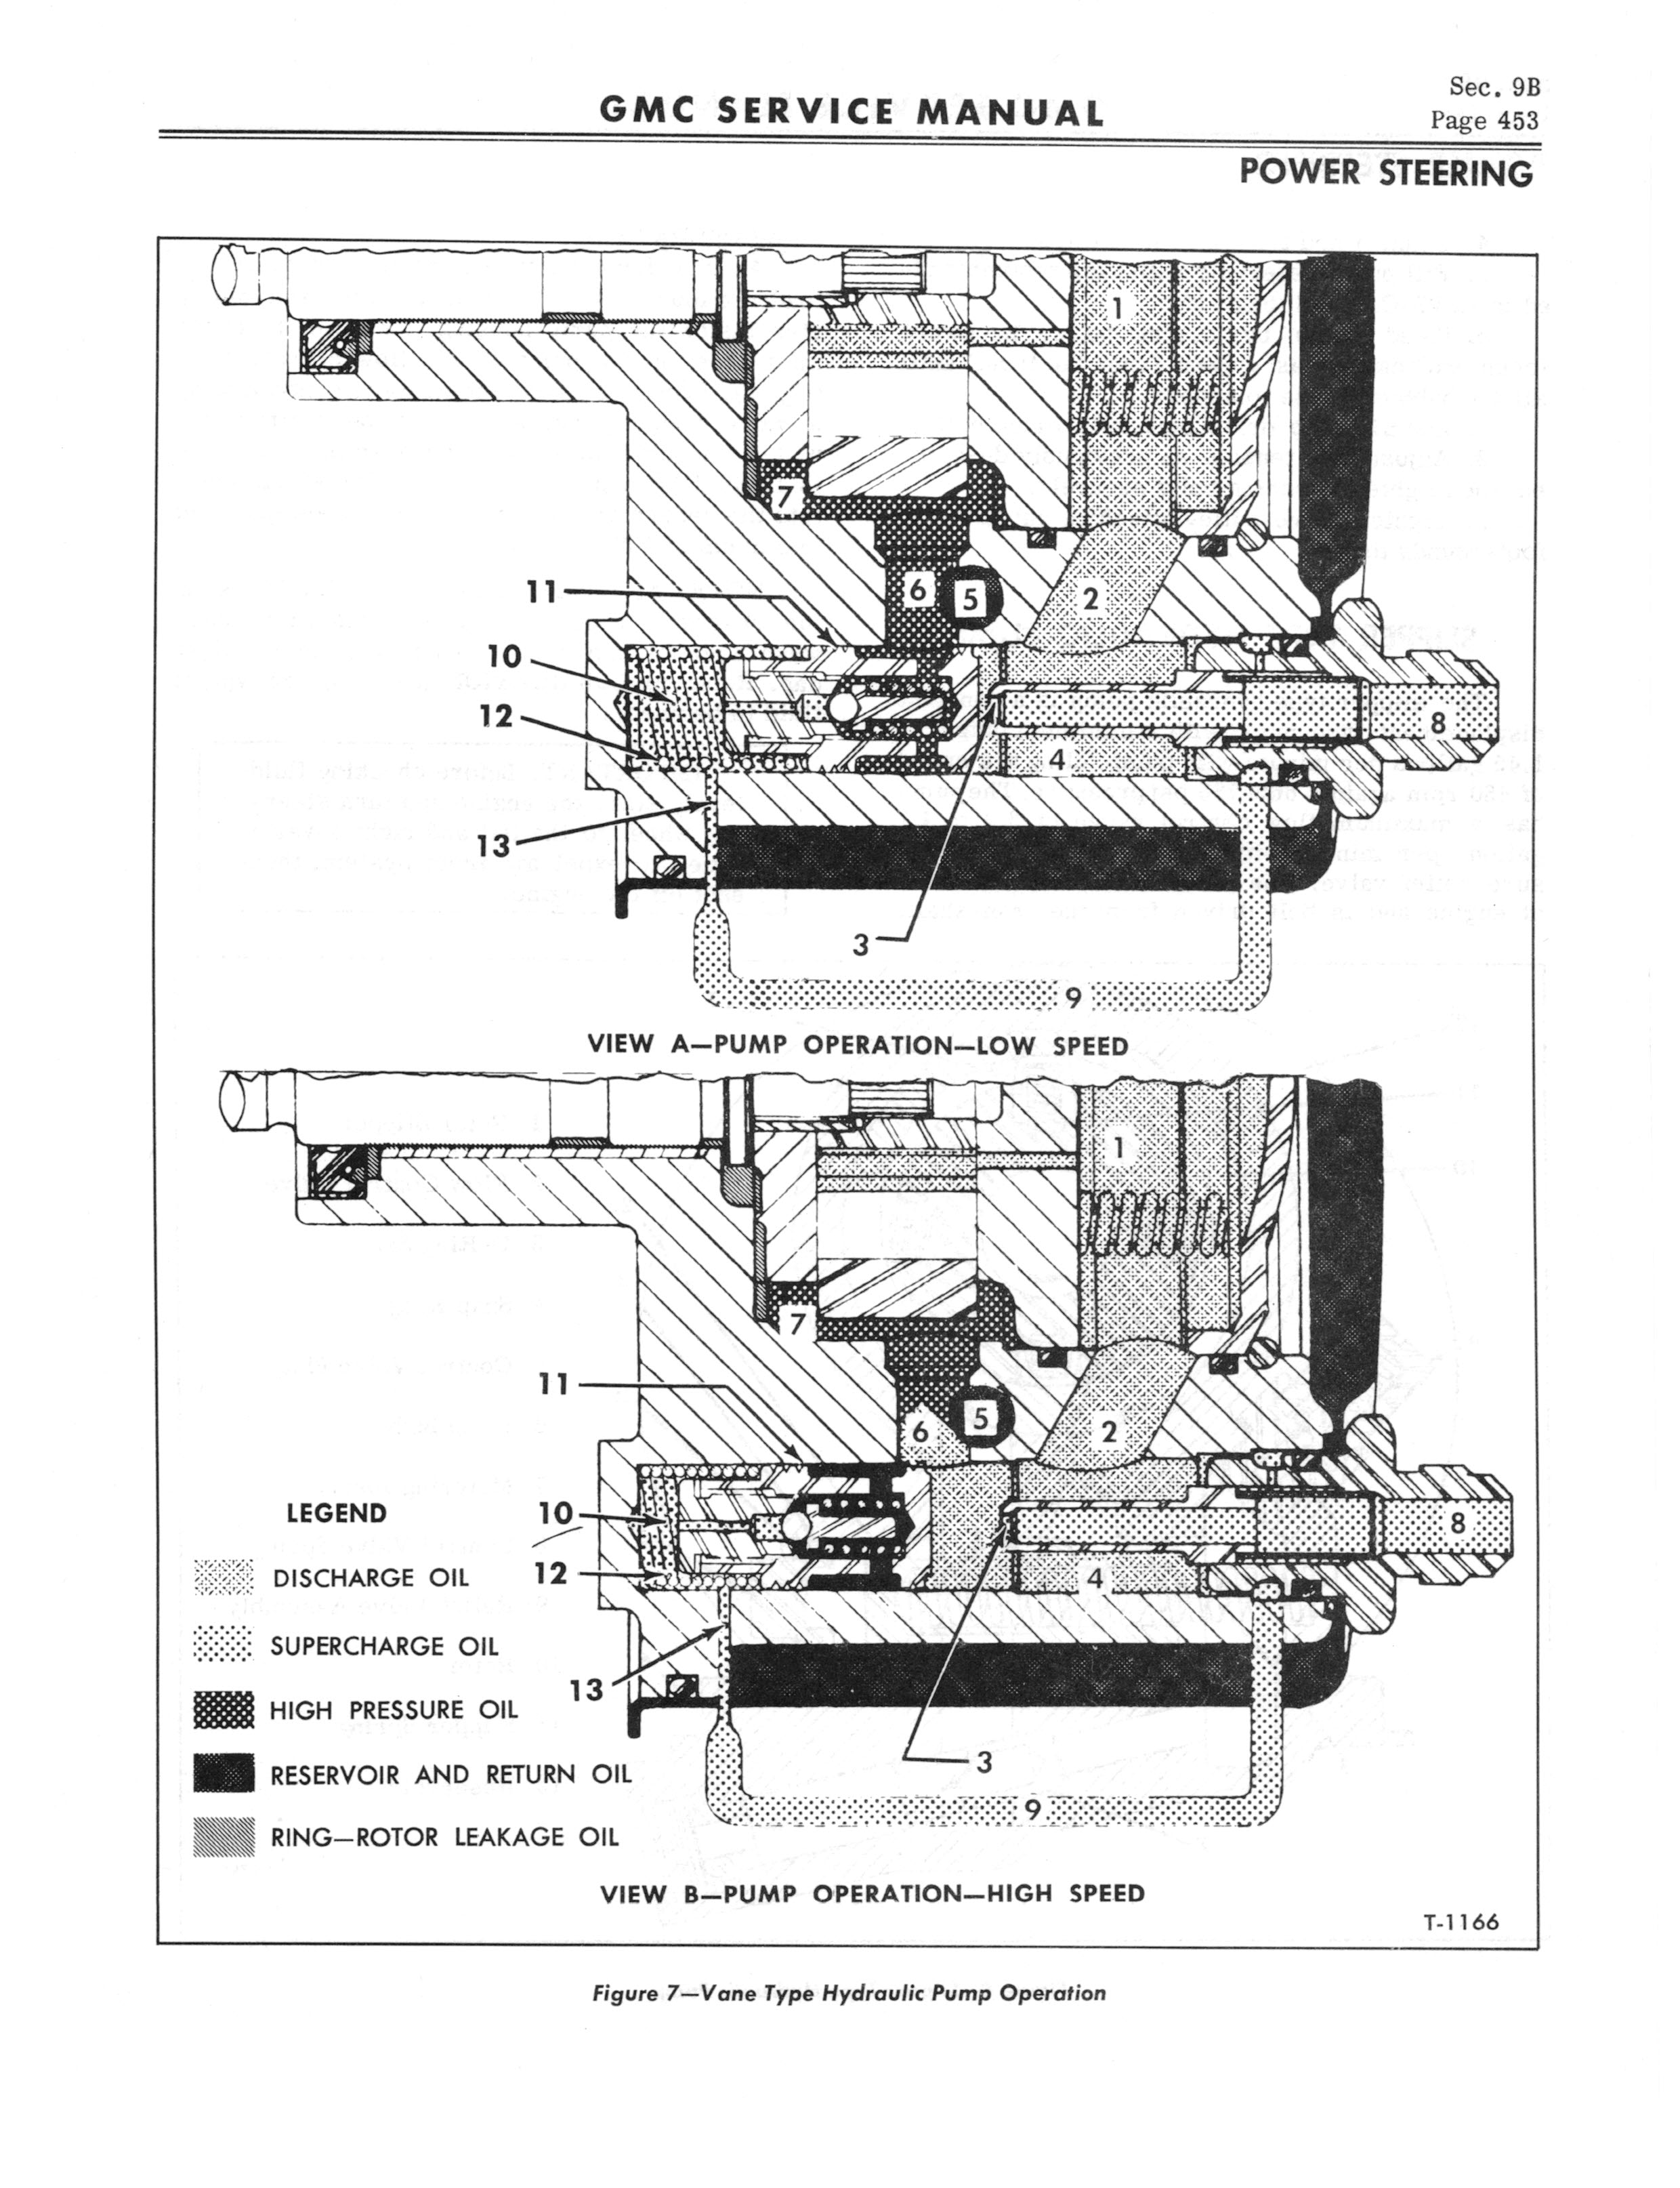 1966 GMC Service Manual Series 4000-6500 page 459 of 506